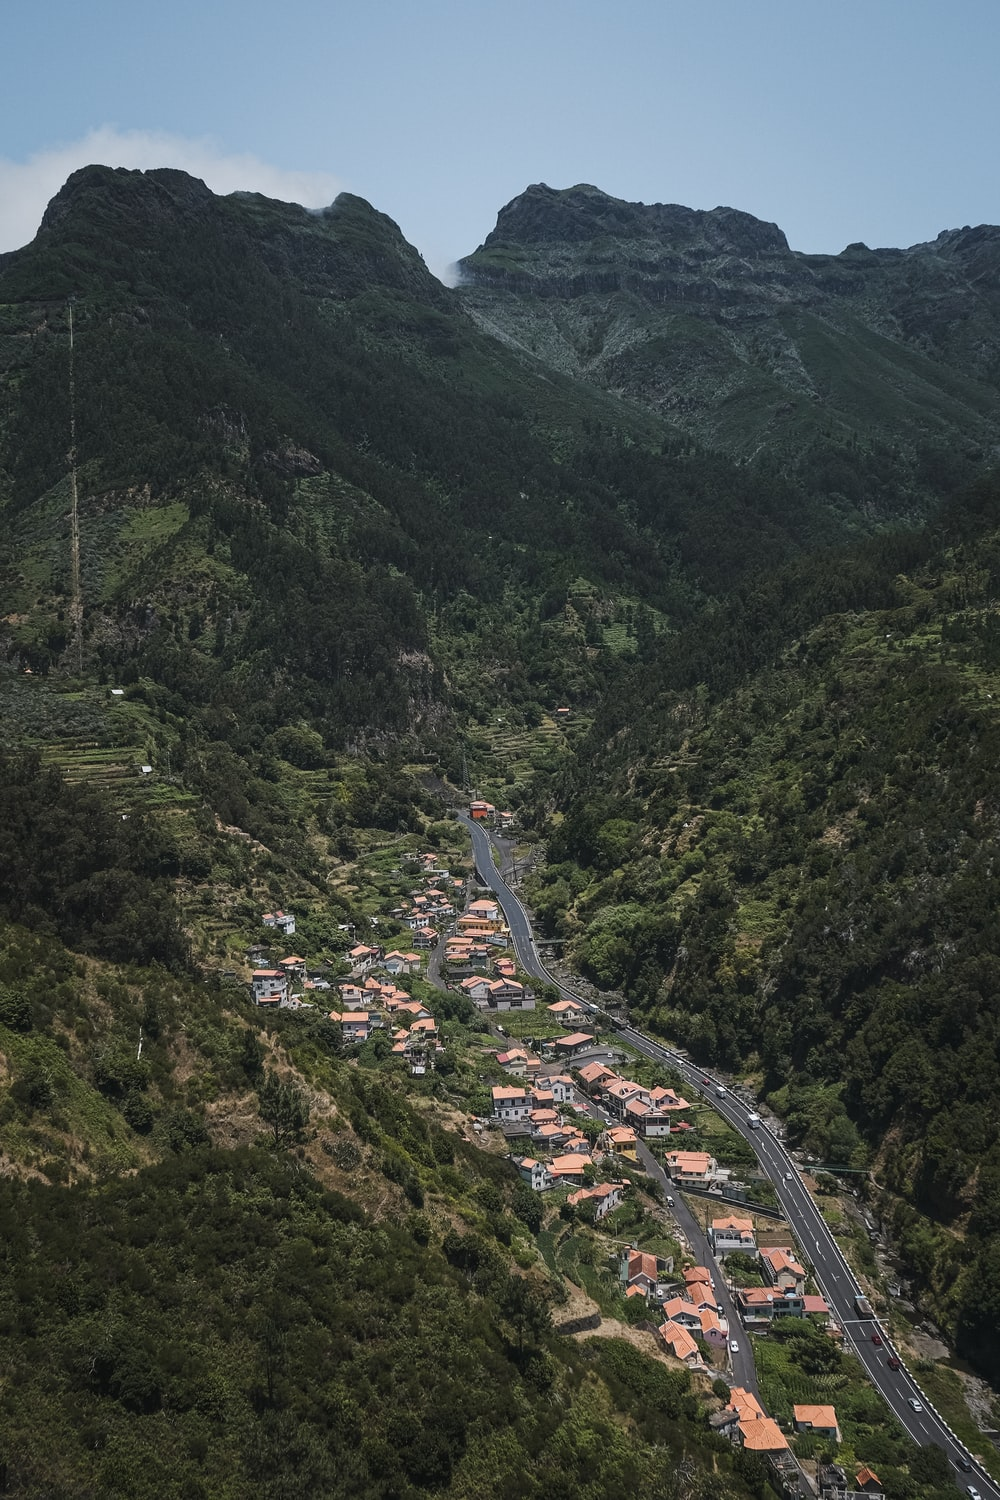 aerial view of buildings near mountain range